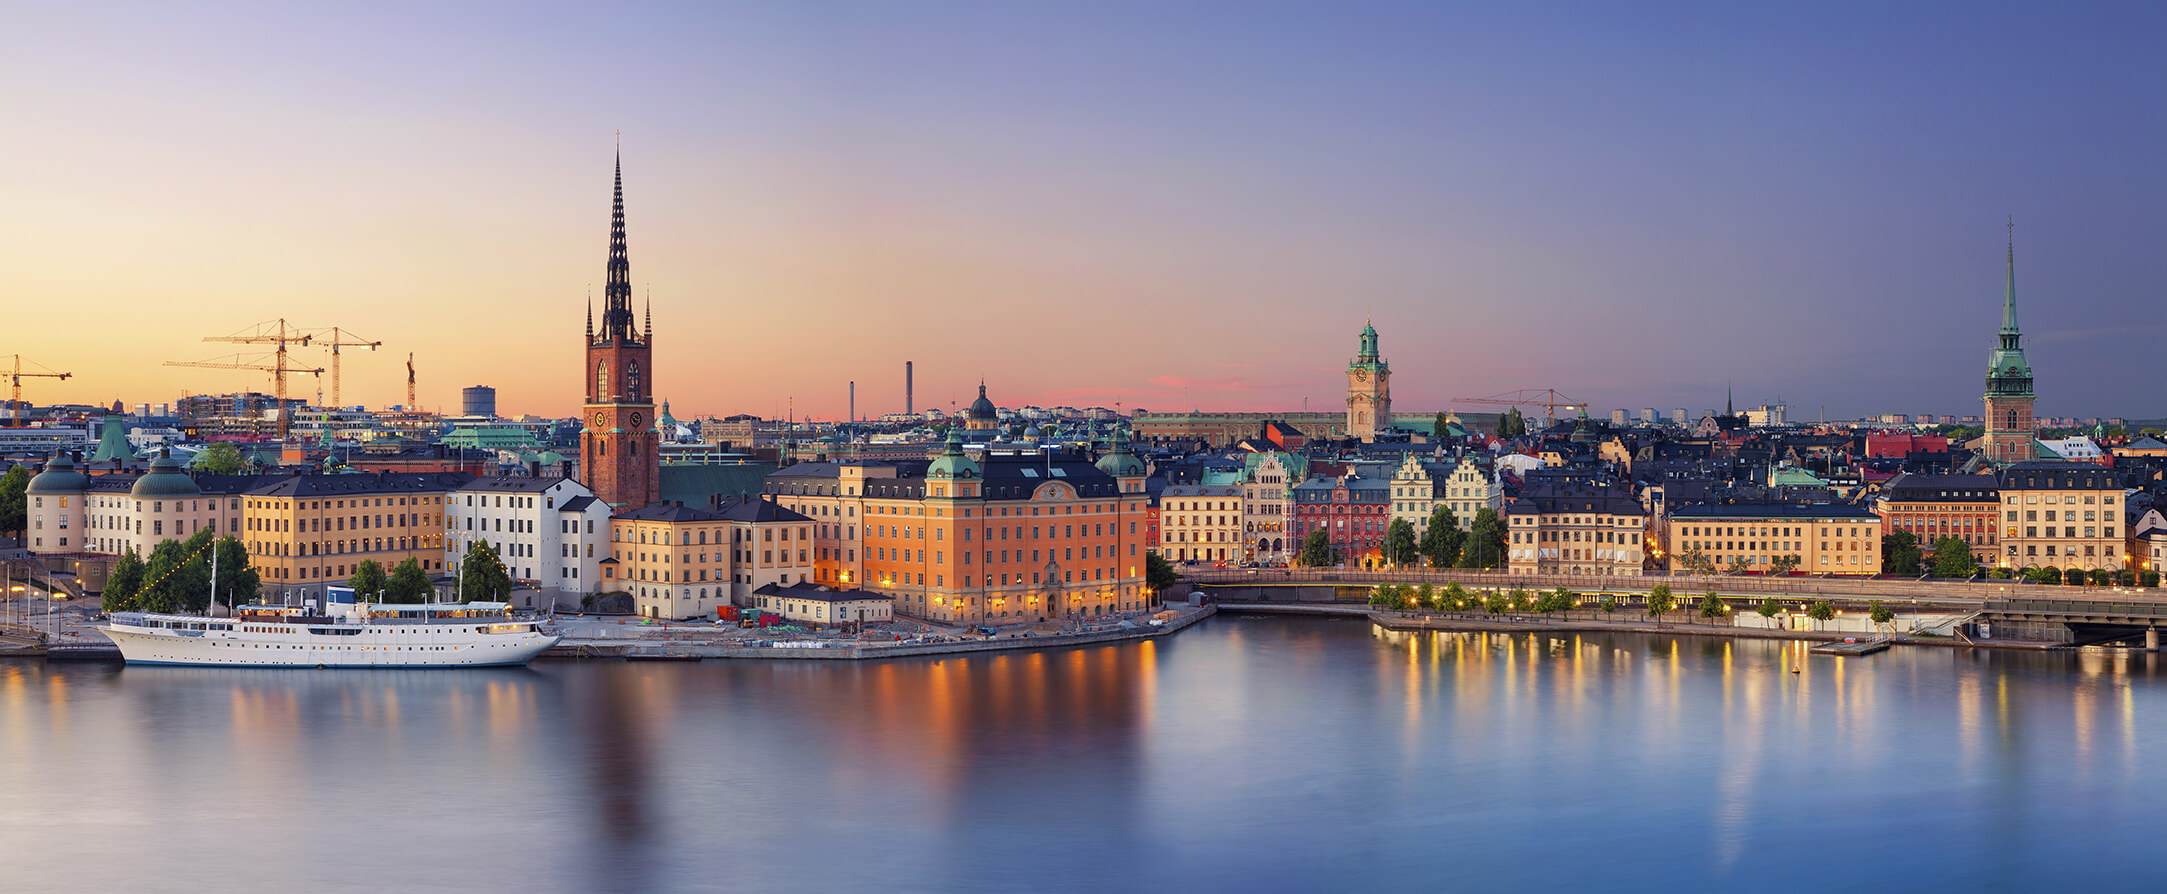 Stockholm-Panoramic-image-of-Stockholm-Sweden-during-sunset_AdobeStock_116337570_2167x894_tiny